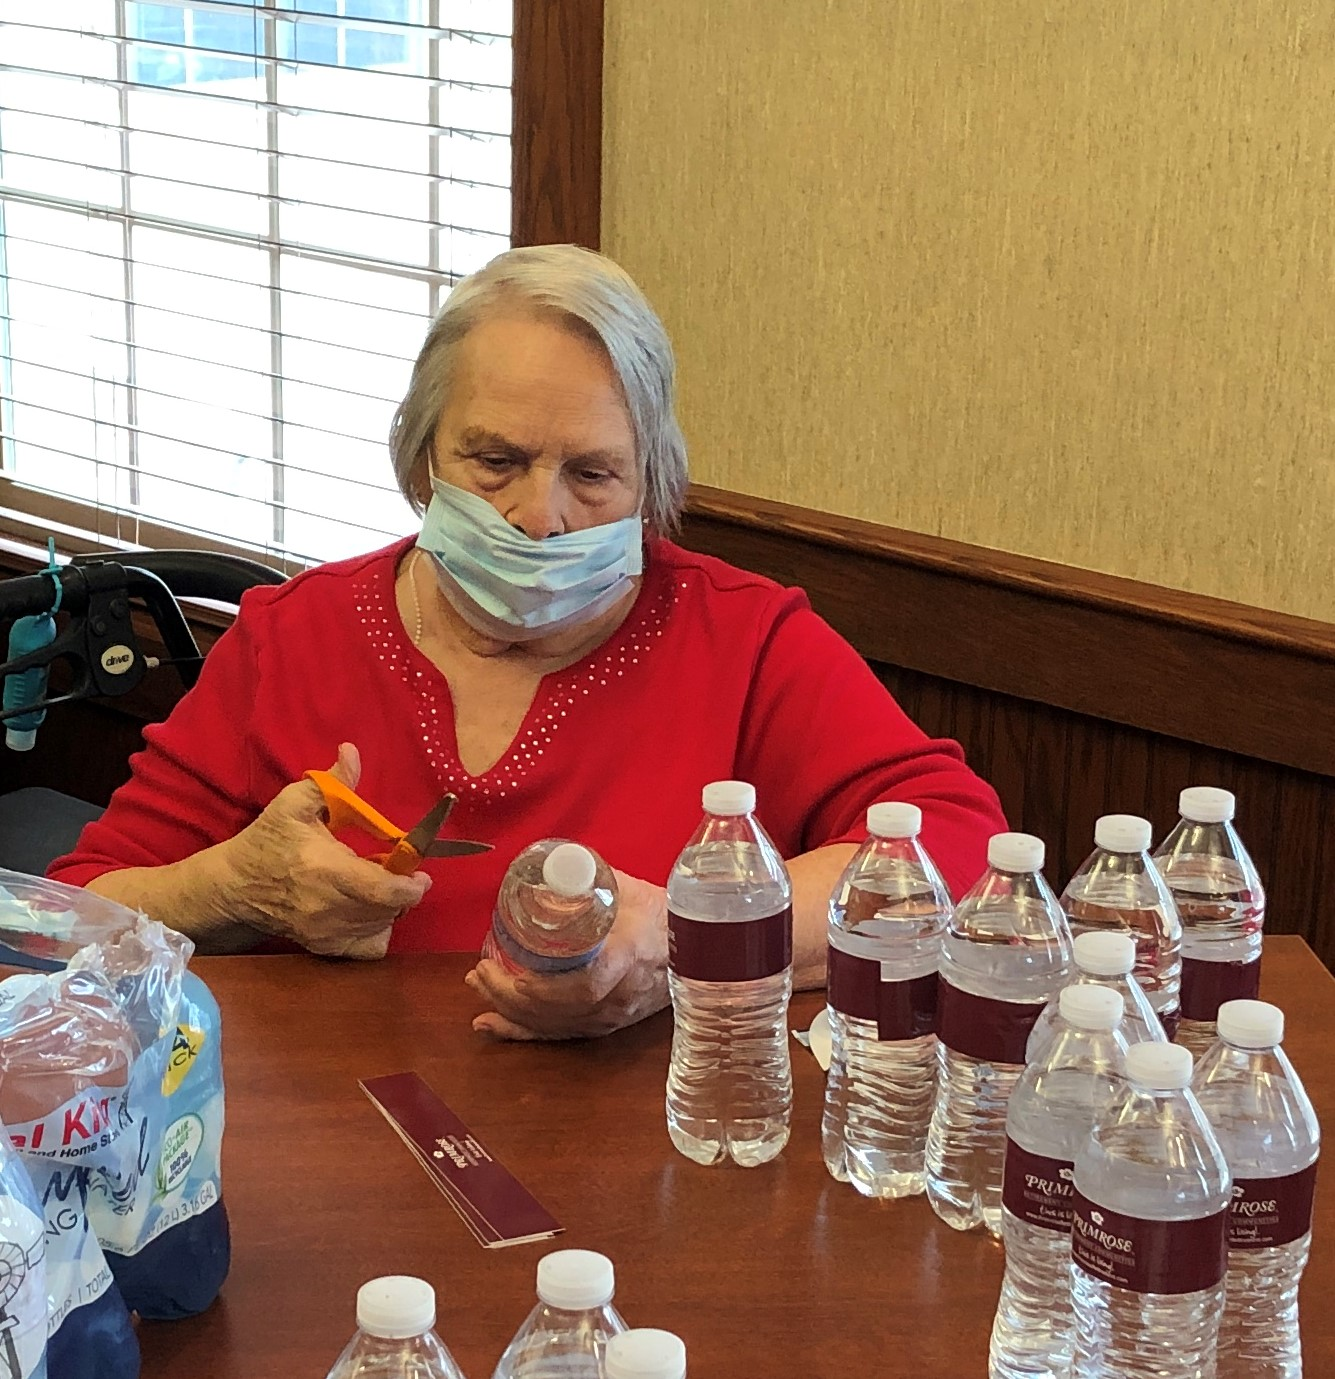 Dolly hard at work wrapping water bottles with the Primrose logo to pass out on RAOK day!